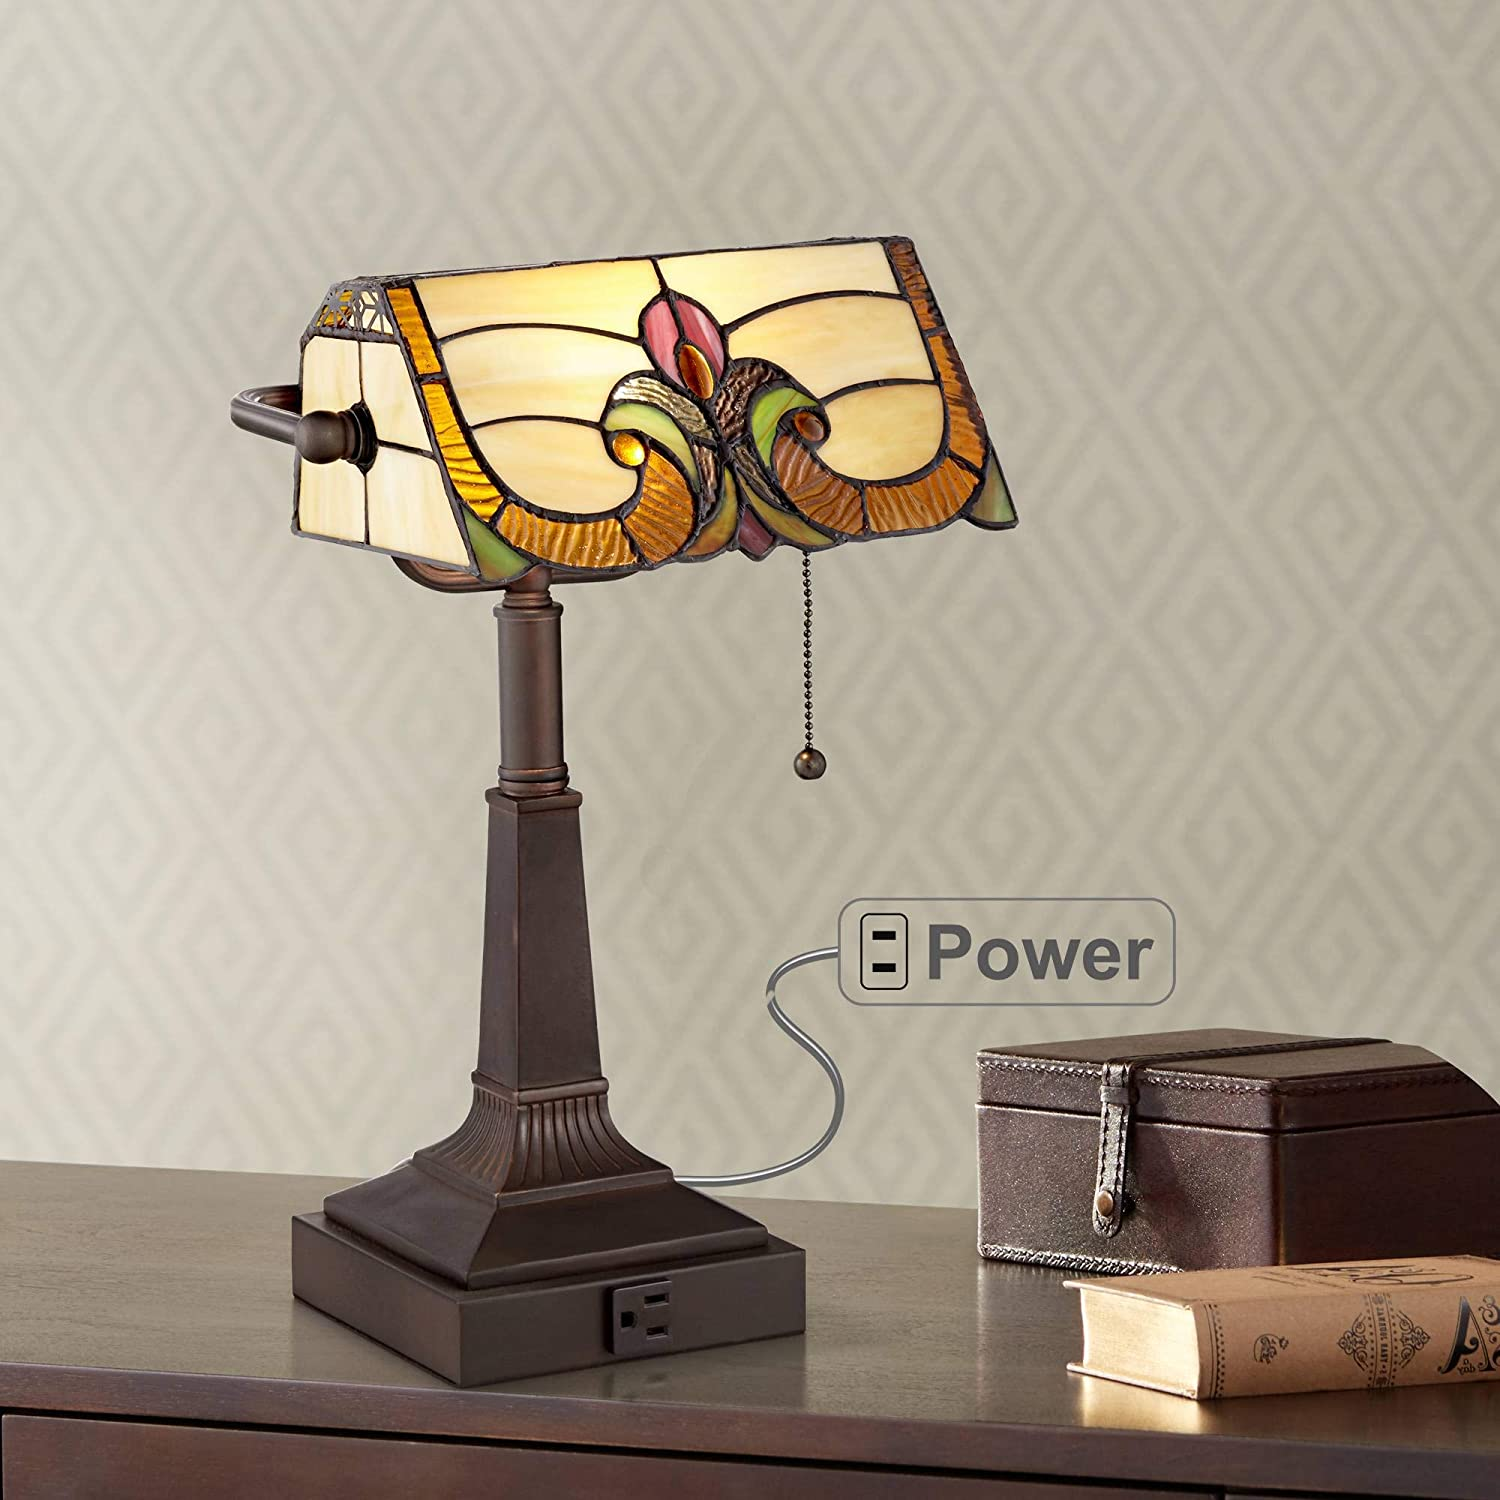 Fleura Traditional Piano Banker Desk Table Lamp 17 High with AC Power Outlet Bronze Tiffany Style Floral Art Glass Shade for Bedroom Bedside Nightstand Office – Robert Louis Tiffany